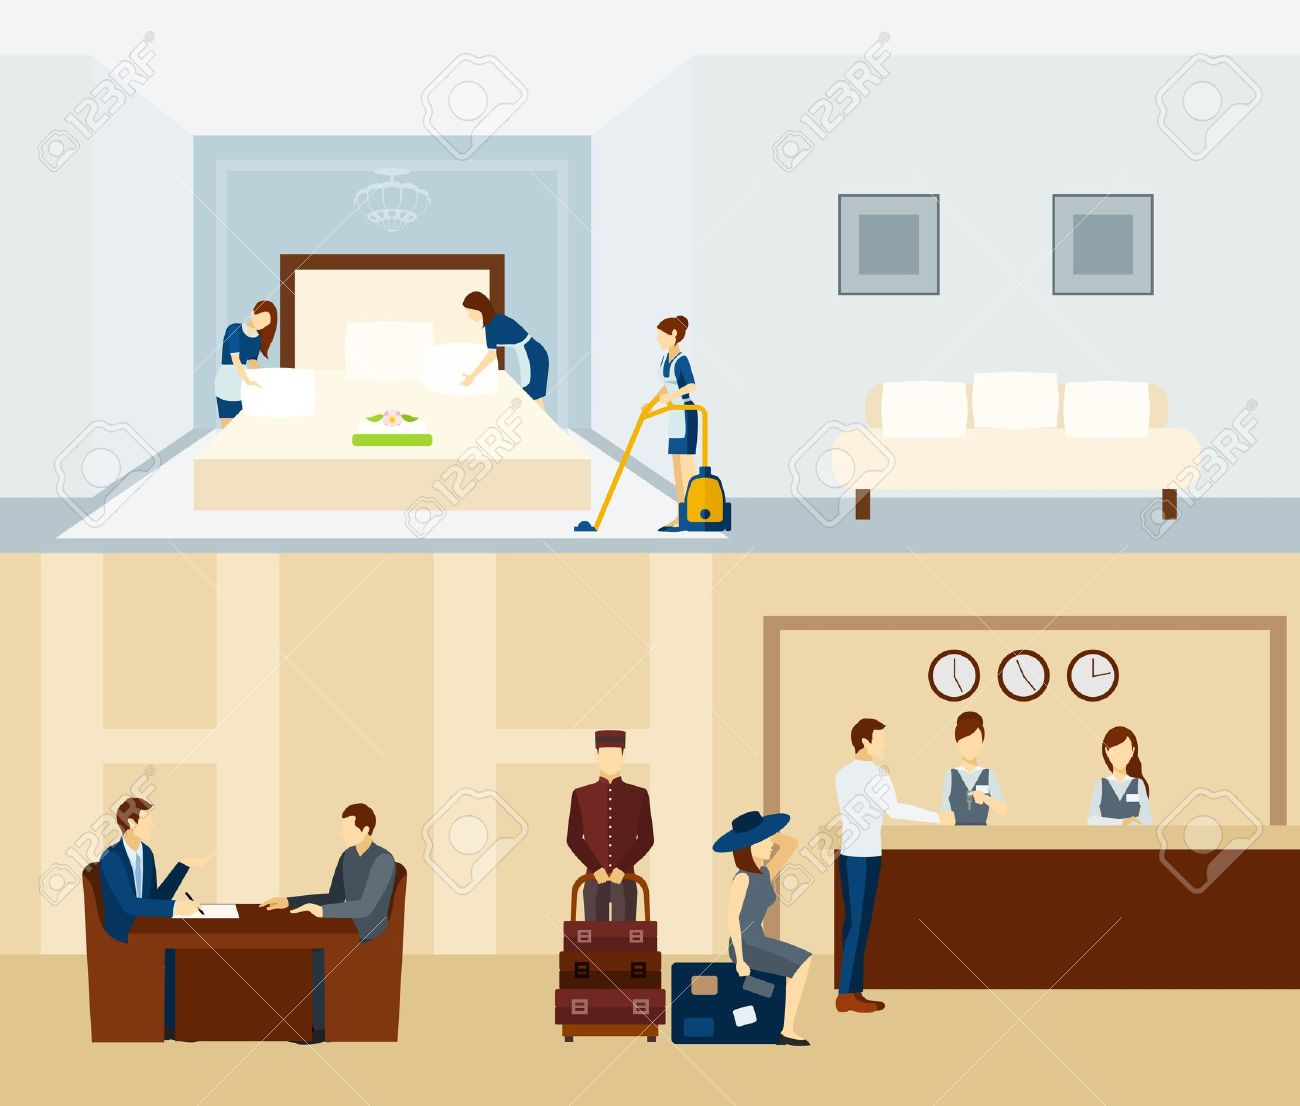 76,306 Hotel Stock Vector Illustration And Royalty Free Hotel Clipart.